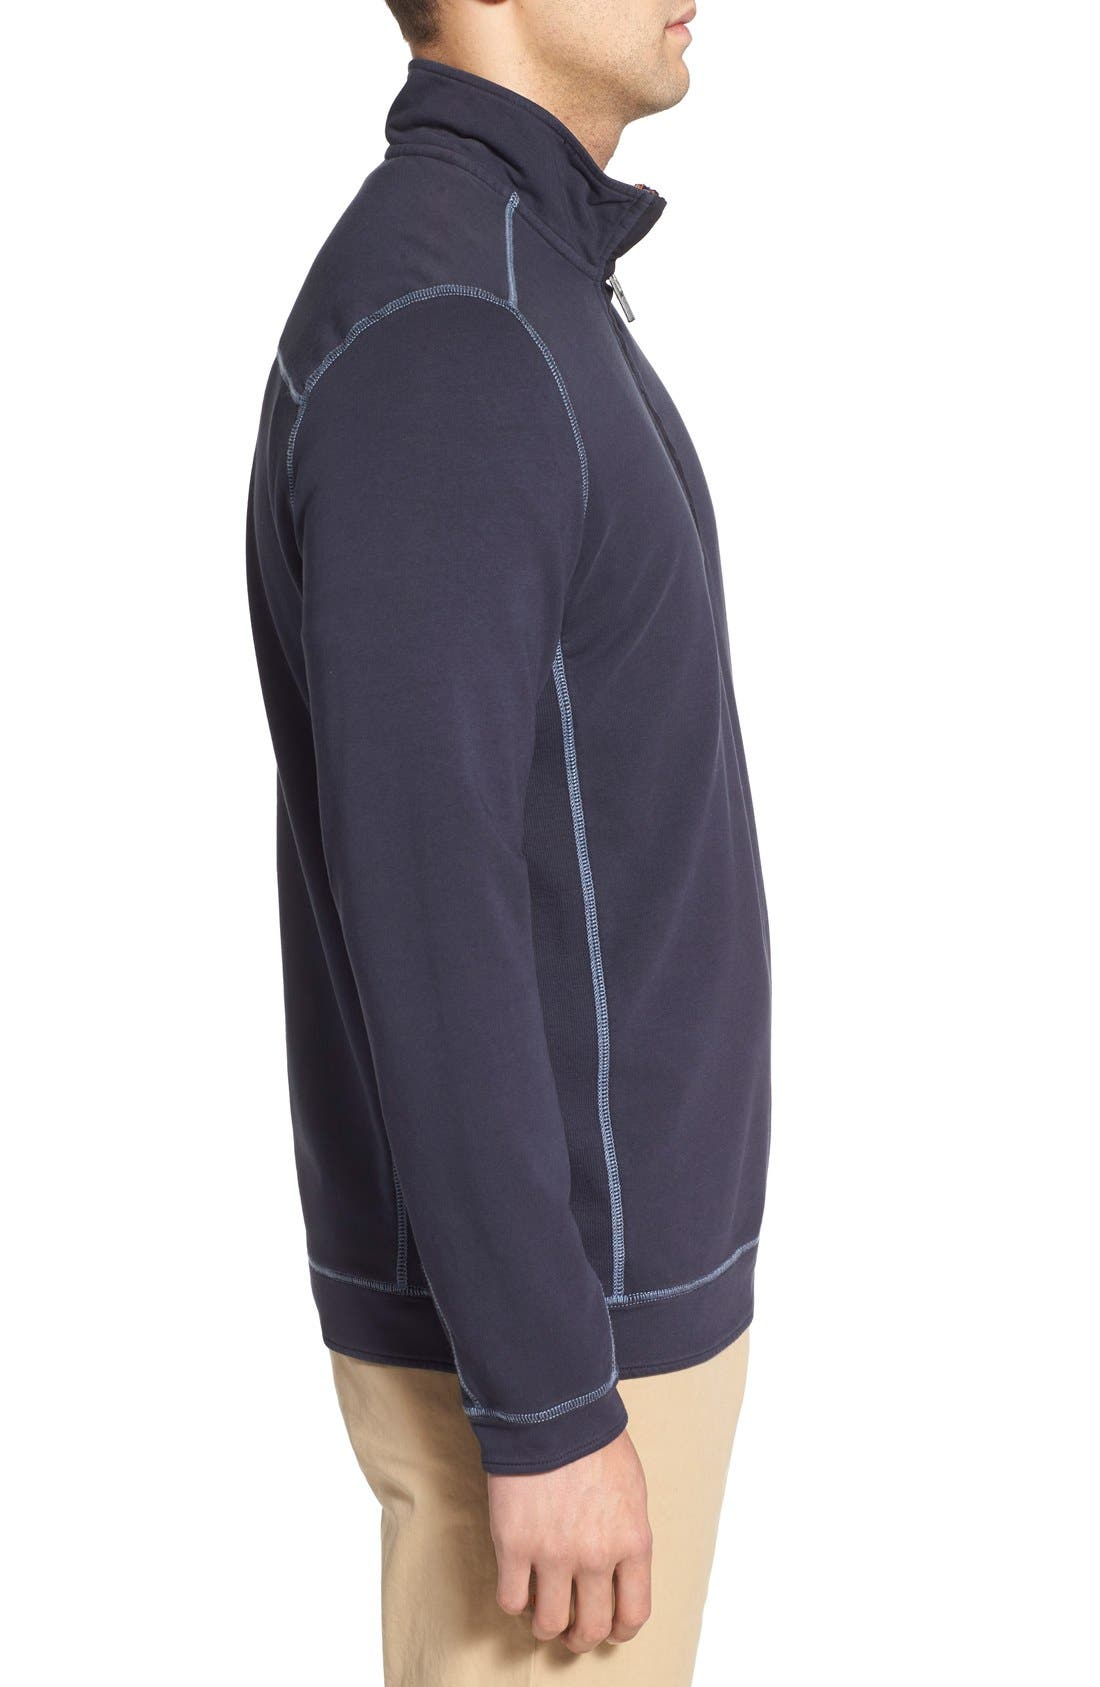 TOMMY BAHAMA,                             'Ben & Terry' Half Zip Pullover,                             Alternate thumbnail 5, color,                             001